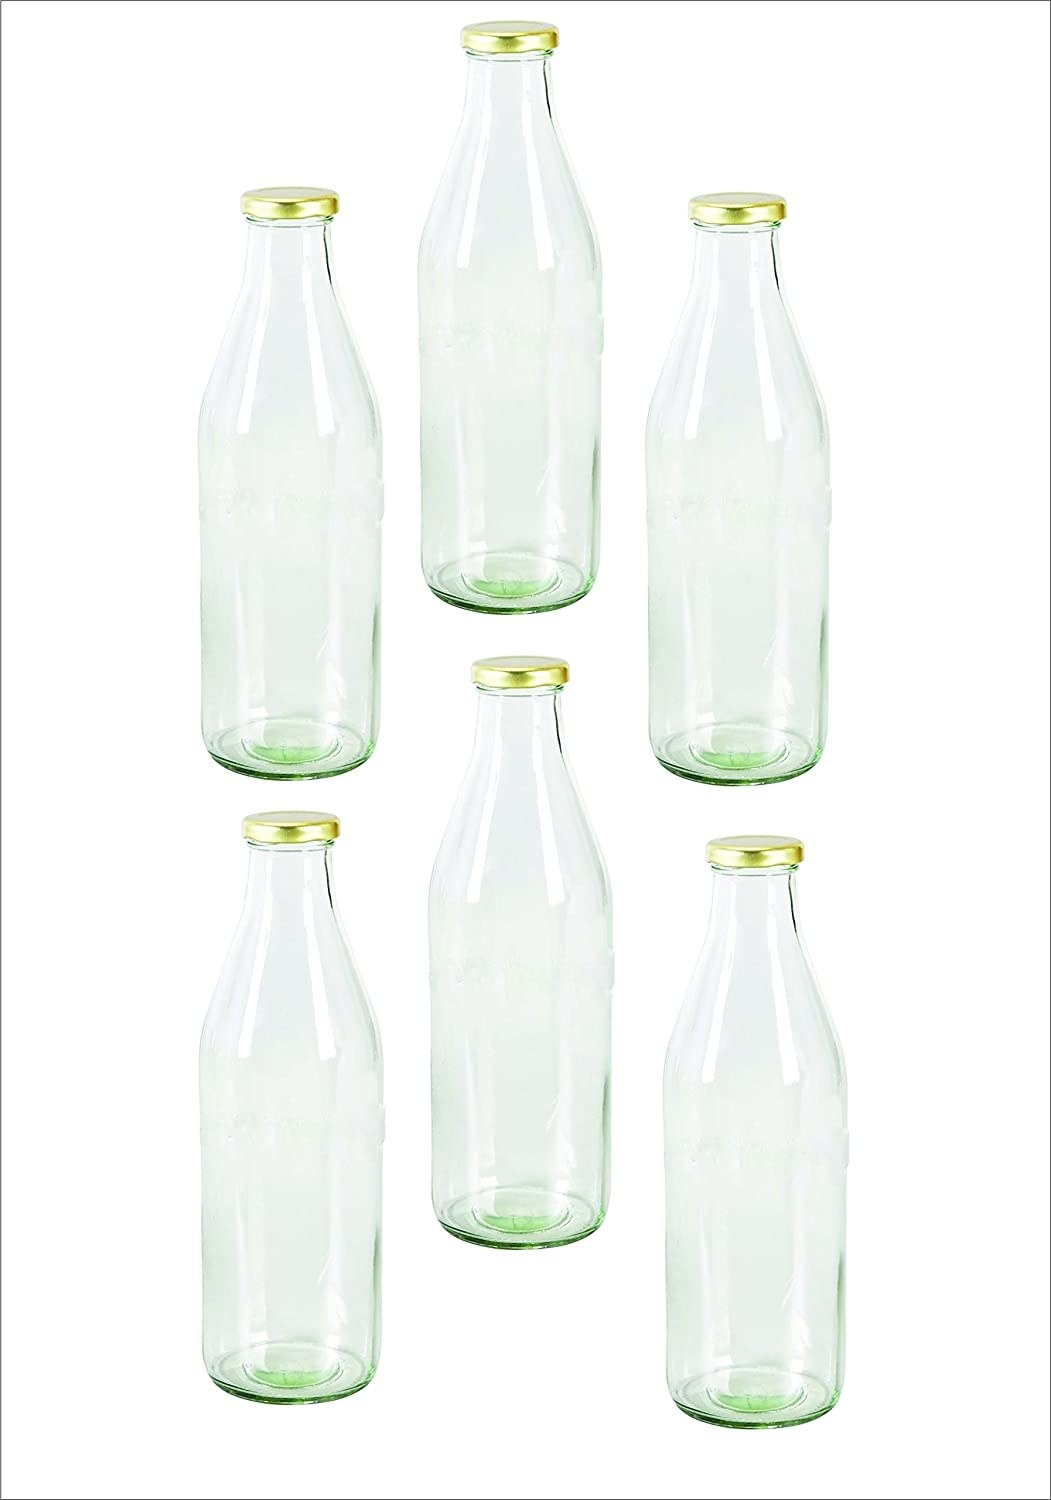 Six transparent glass bottles